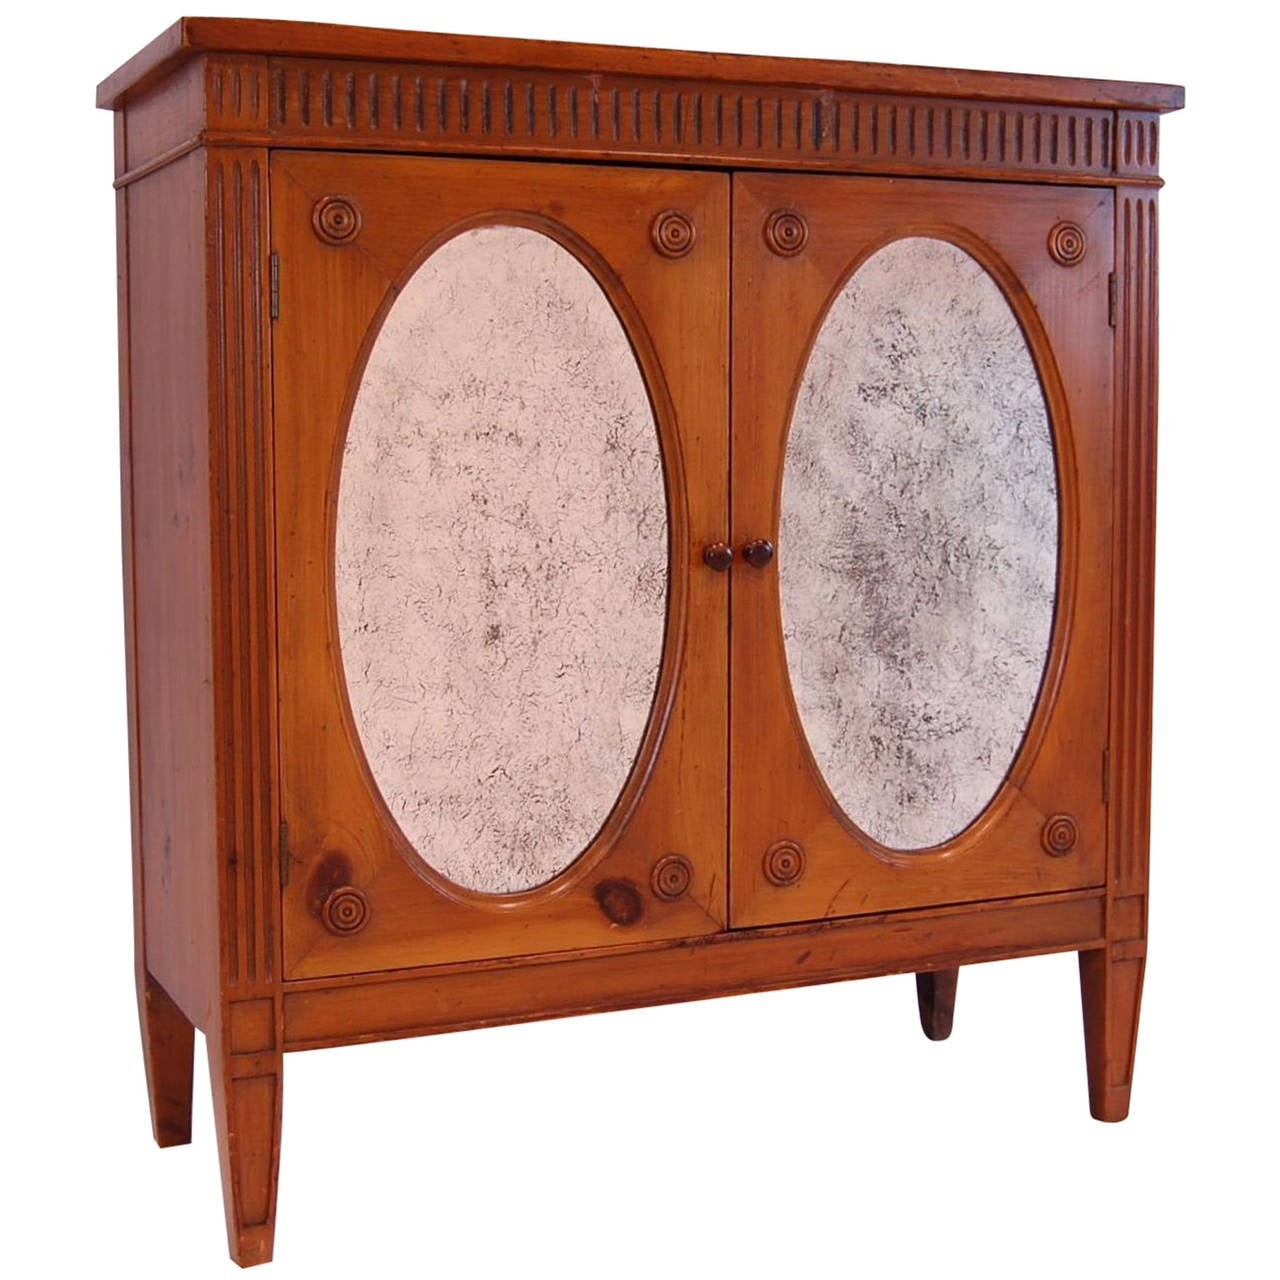 Painting Knotty Pine Cabinets: Knotty Pine Neoclassical Style Two-Door Cabinet, Circa